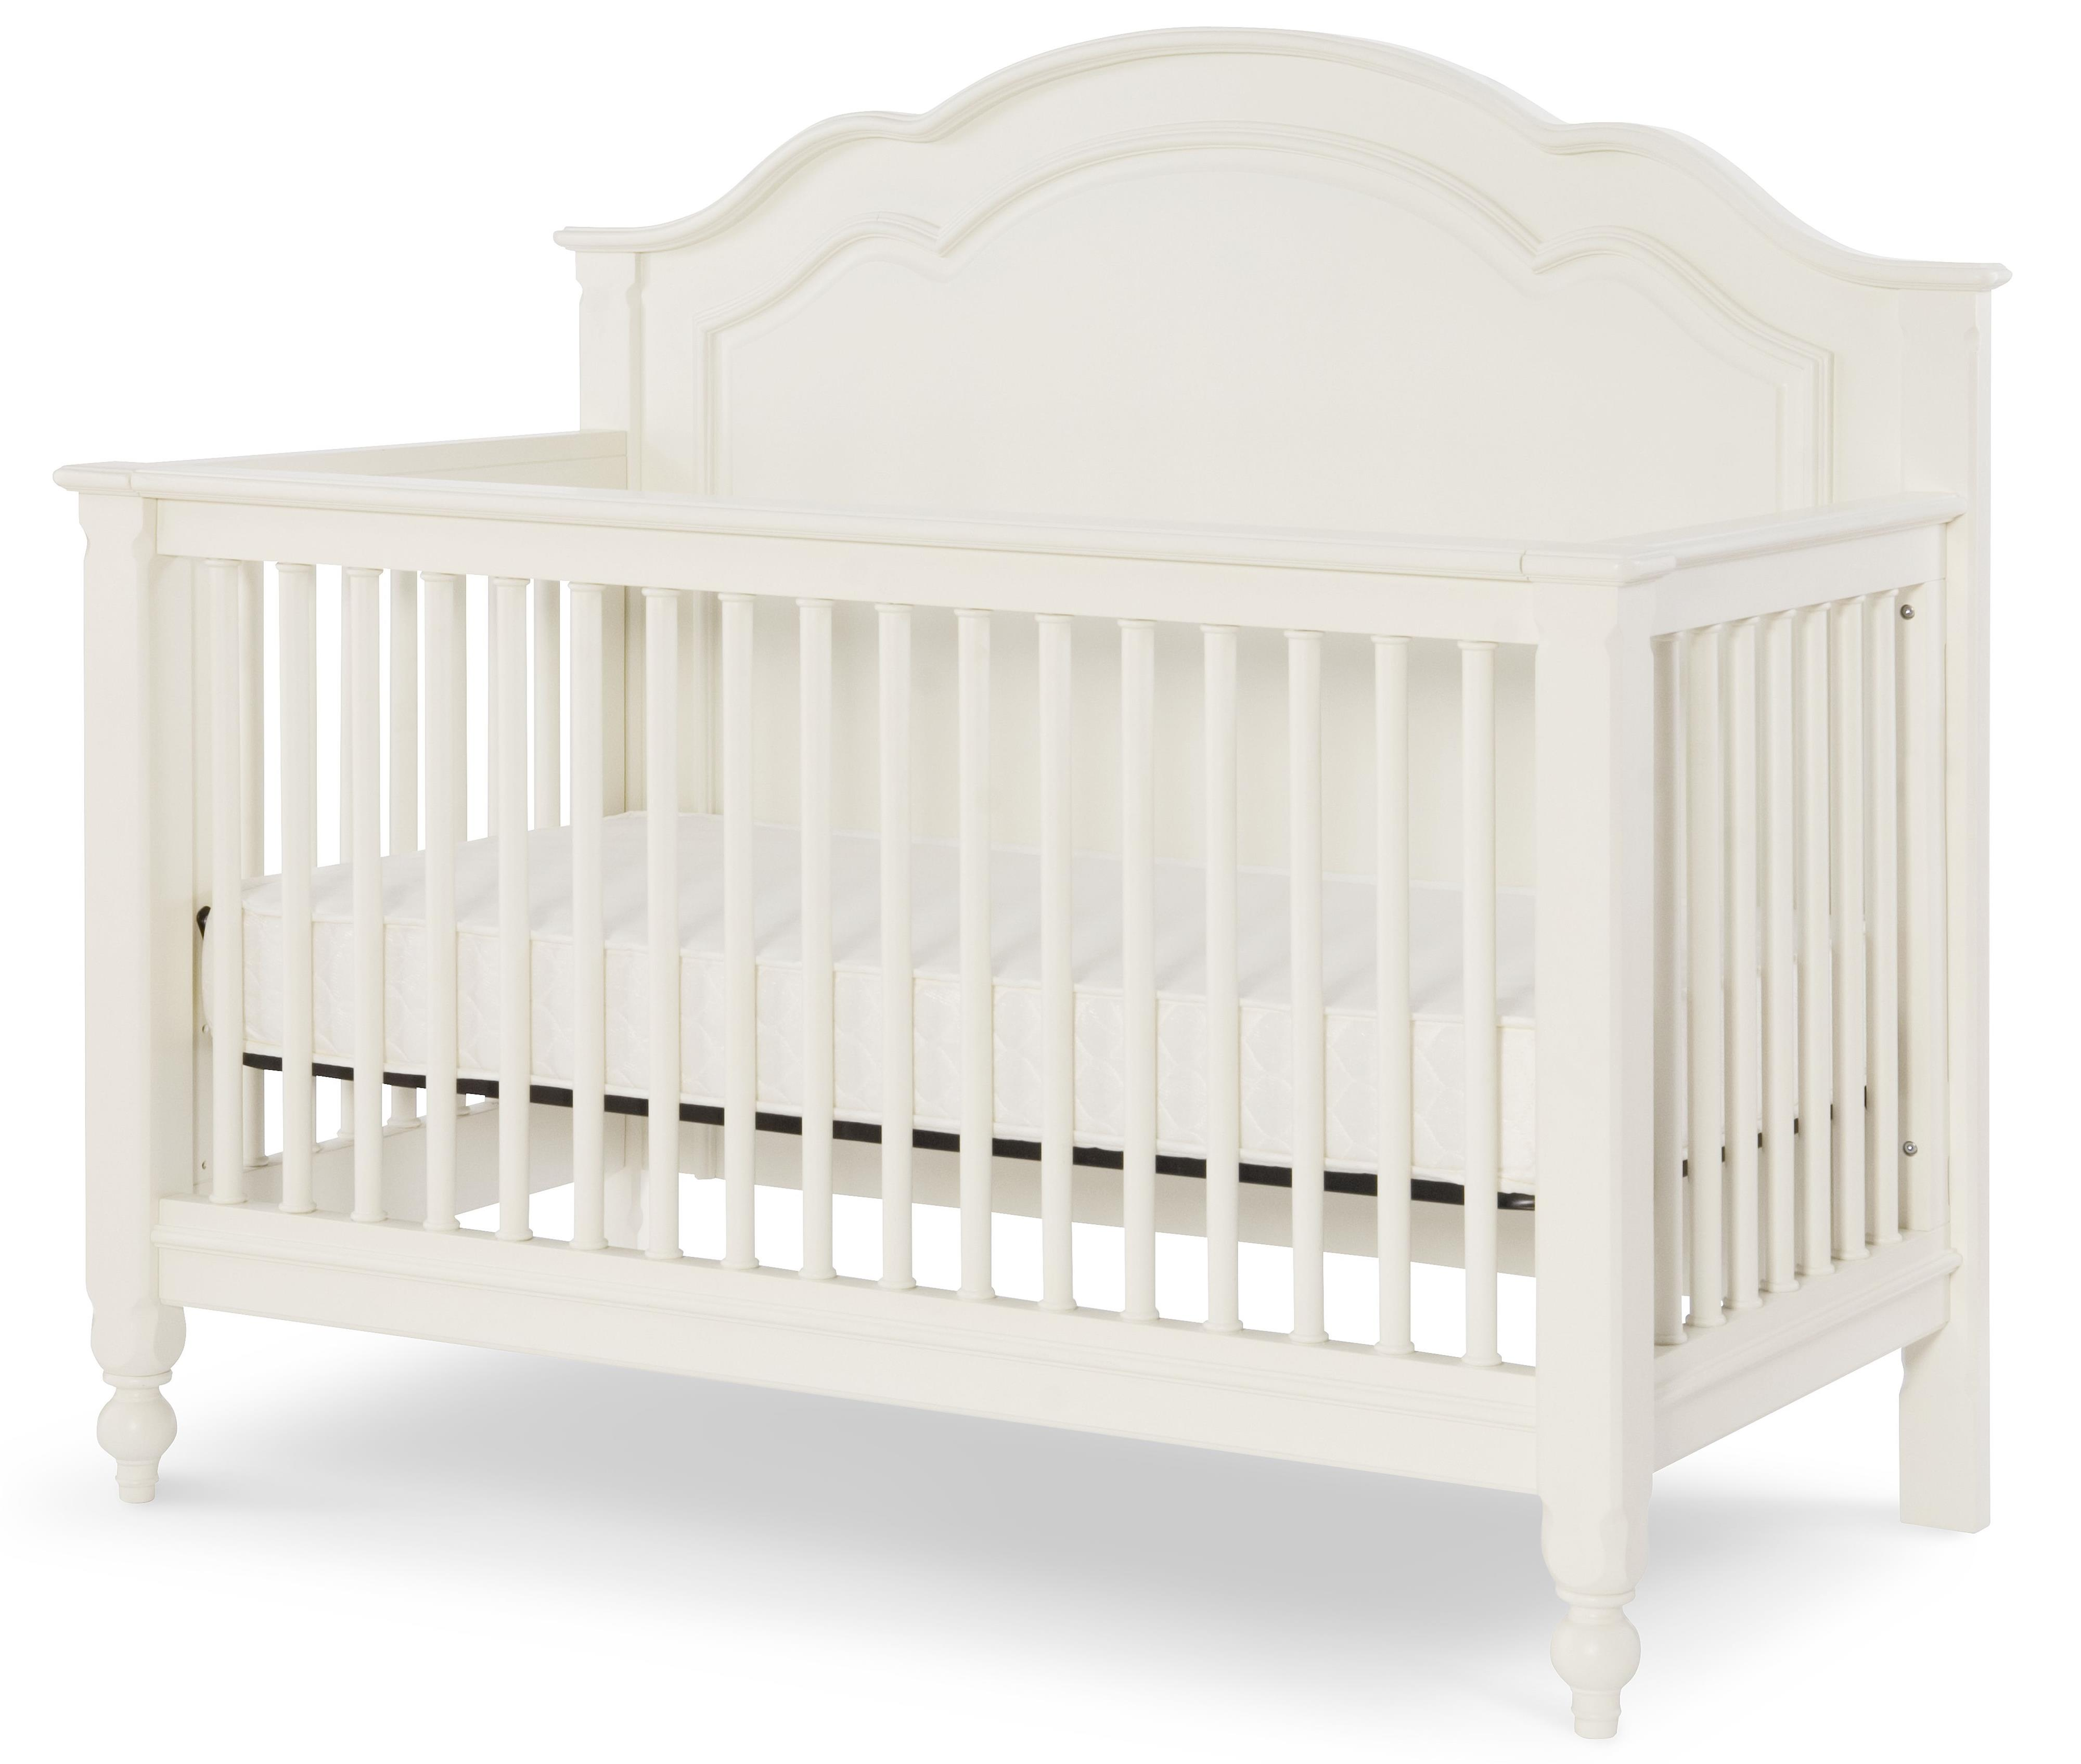 Legacy Classic Kids Harmony Convertible Crib/Toddler Bed/Daybed - Item Number: 4910-8900+20